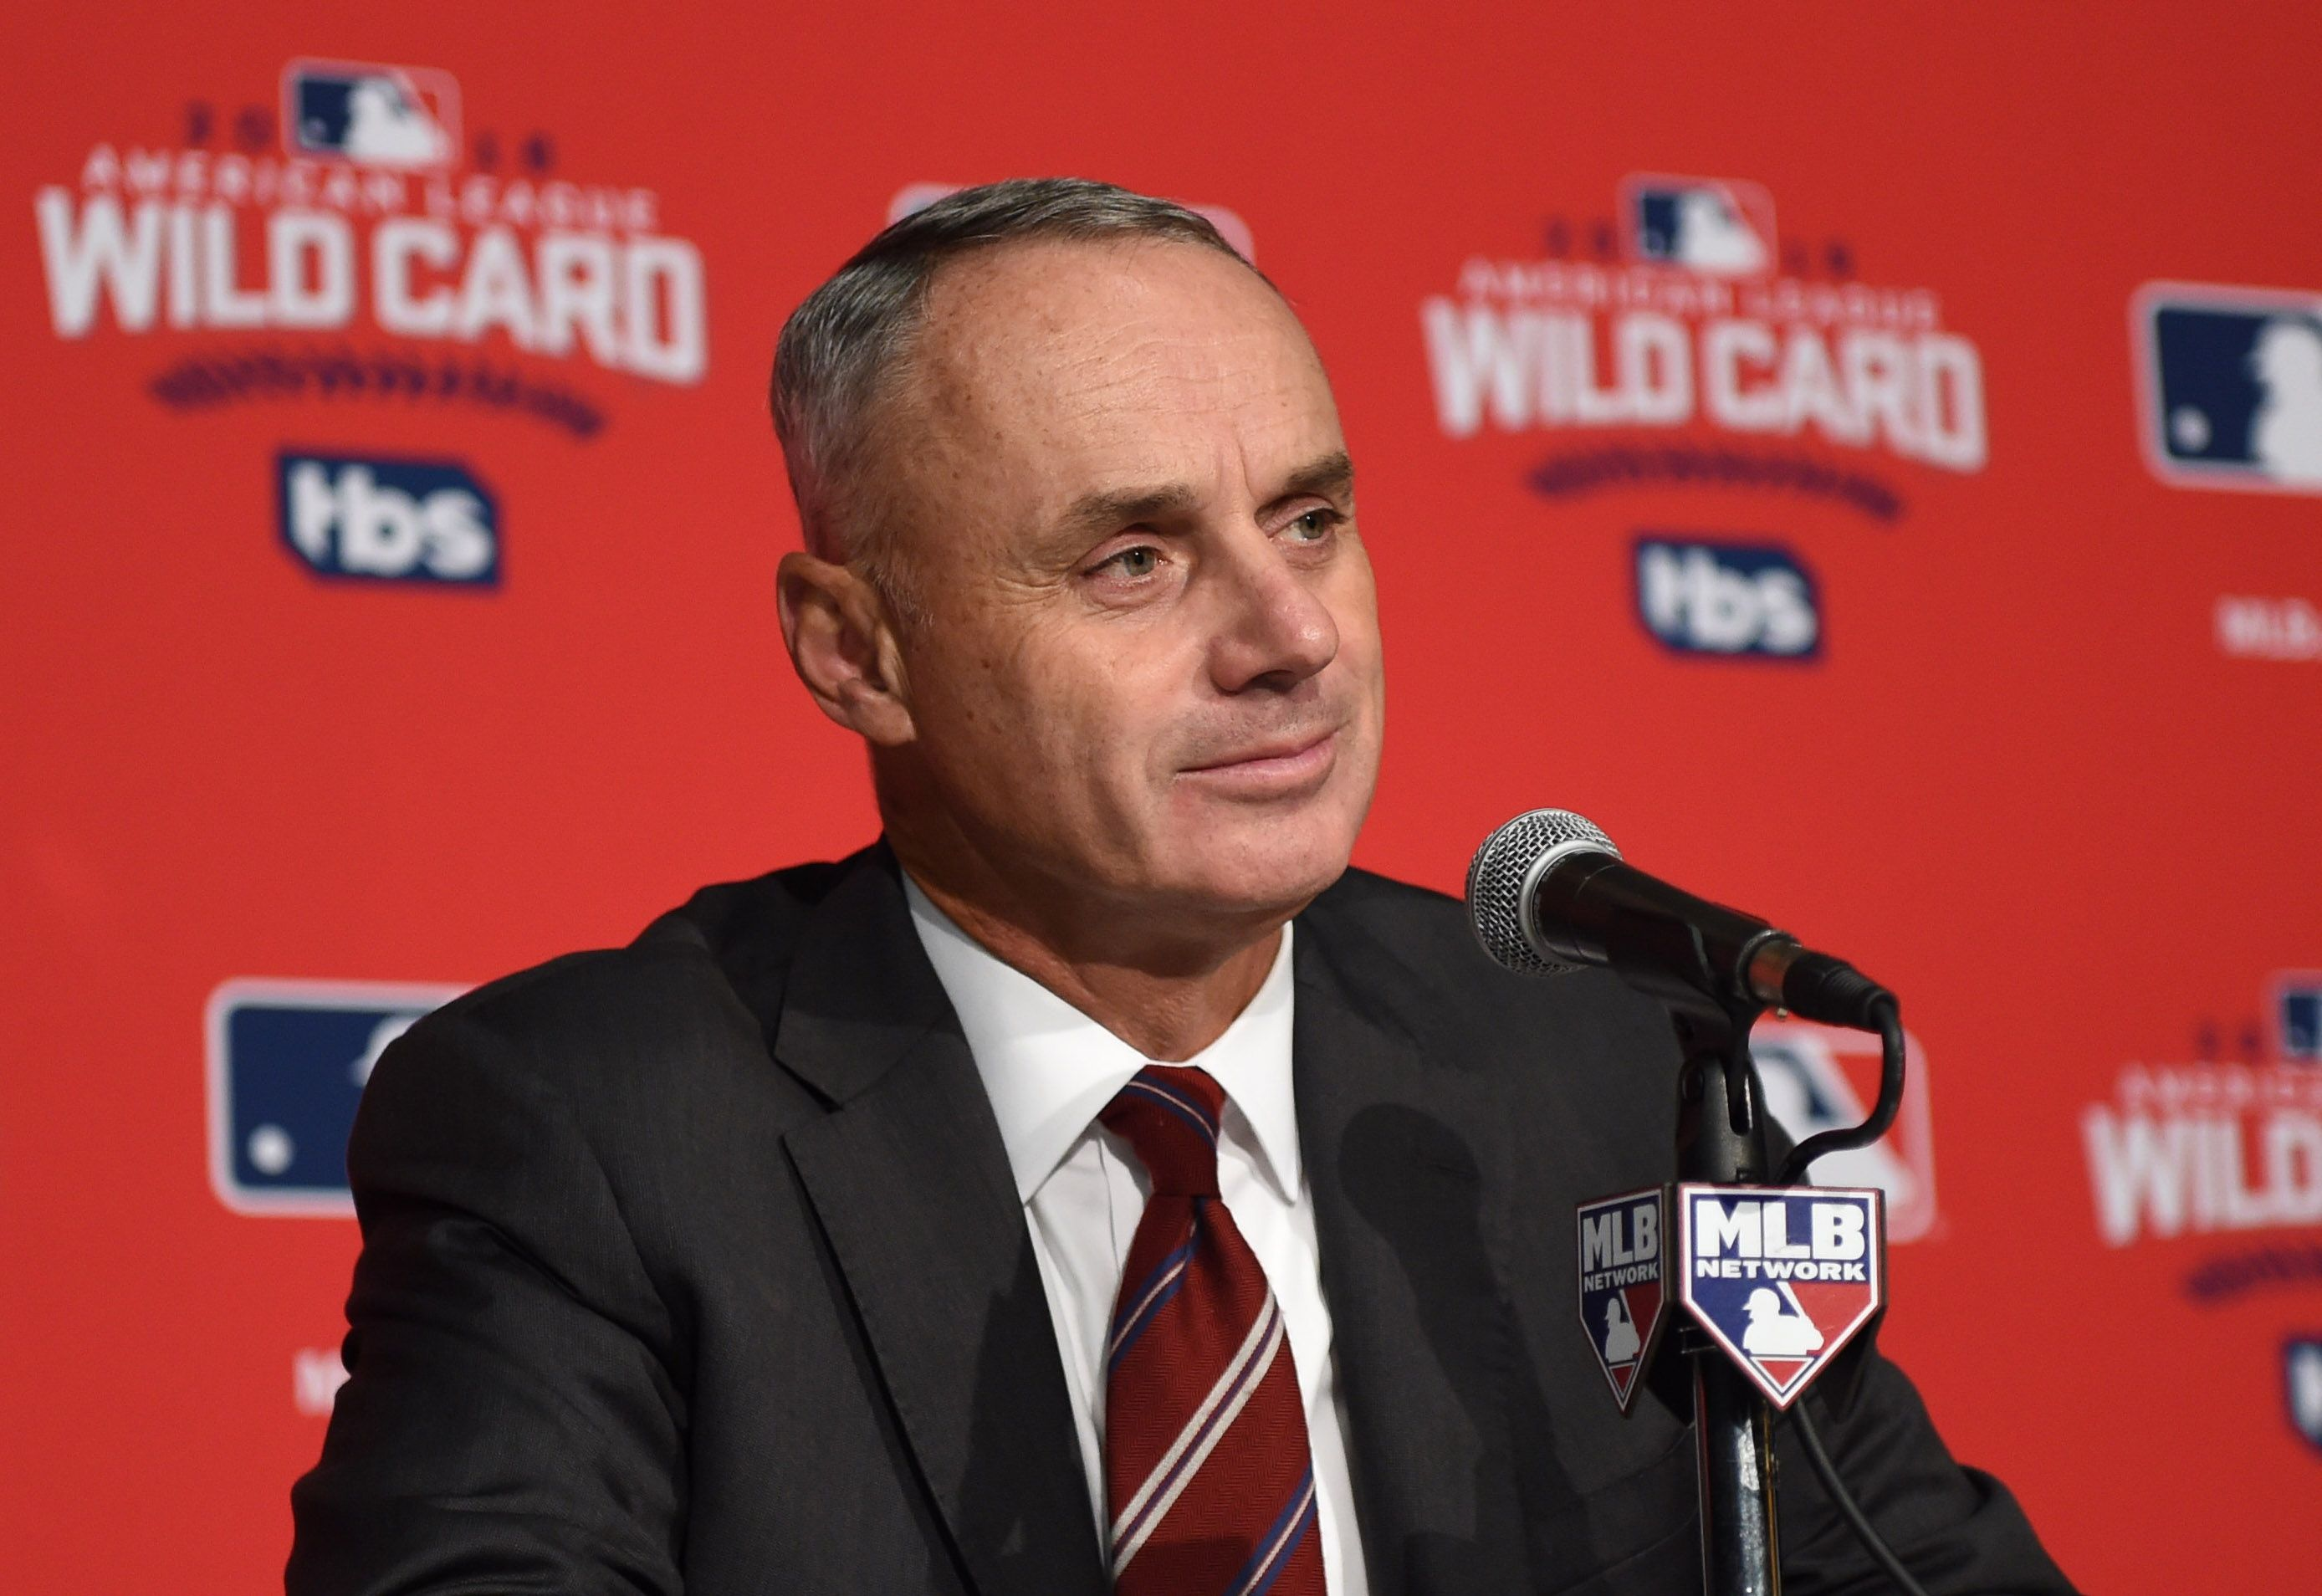 Will The Atlanta Braves Support The Commissioner S Odd Pace Of Play Plans Atlanta Braves Mlb Braves